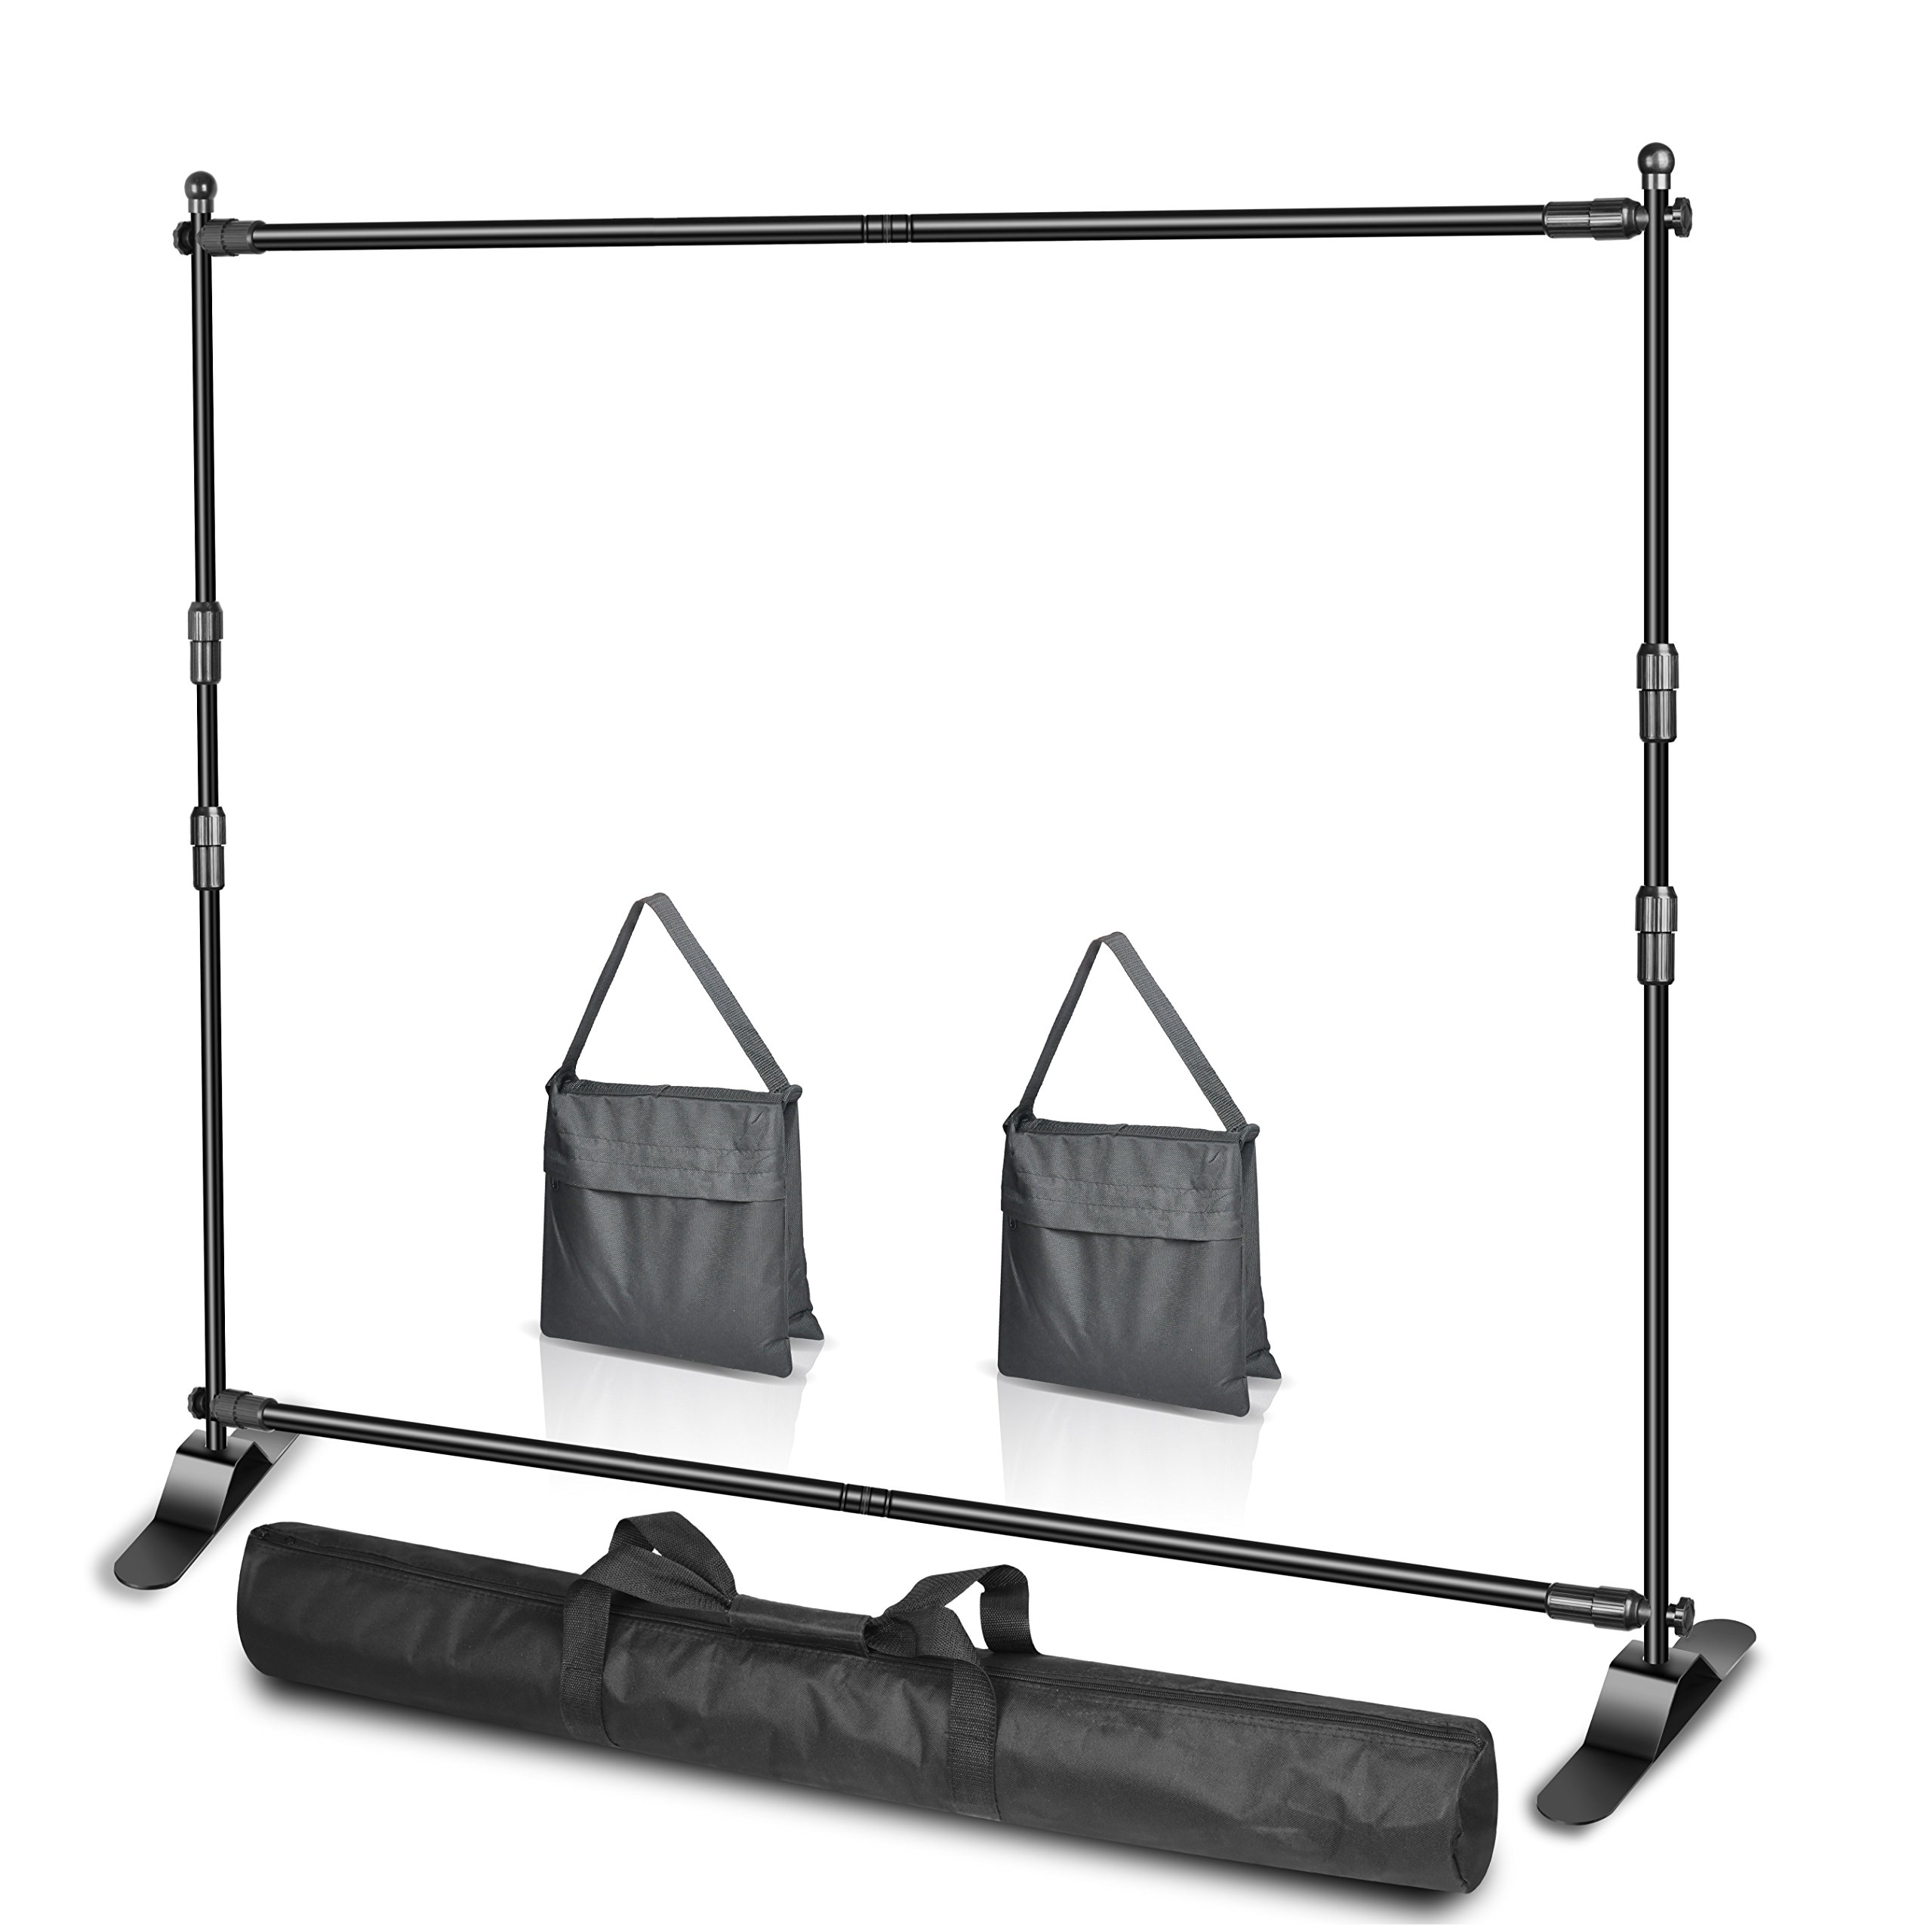 Emart 10 x 8ft (W X H) Photo Backdrop Banner Stand Heavy Duty - Adjustable Telescopic Tube Trade Show Display Stand, Step and Repeat Frame Stand for Professional Photography Booth Background Stand Kit by EMART